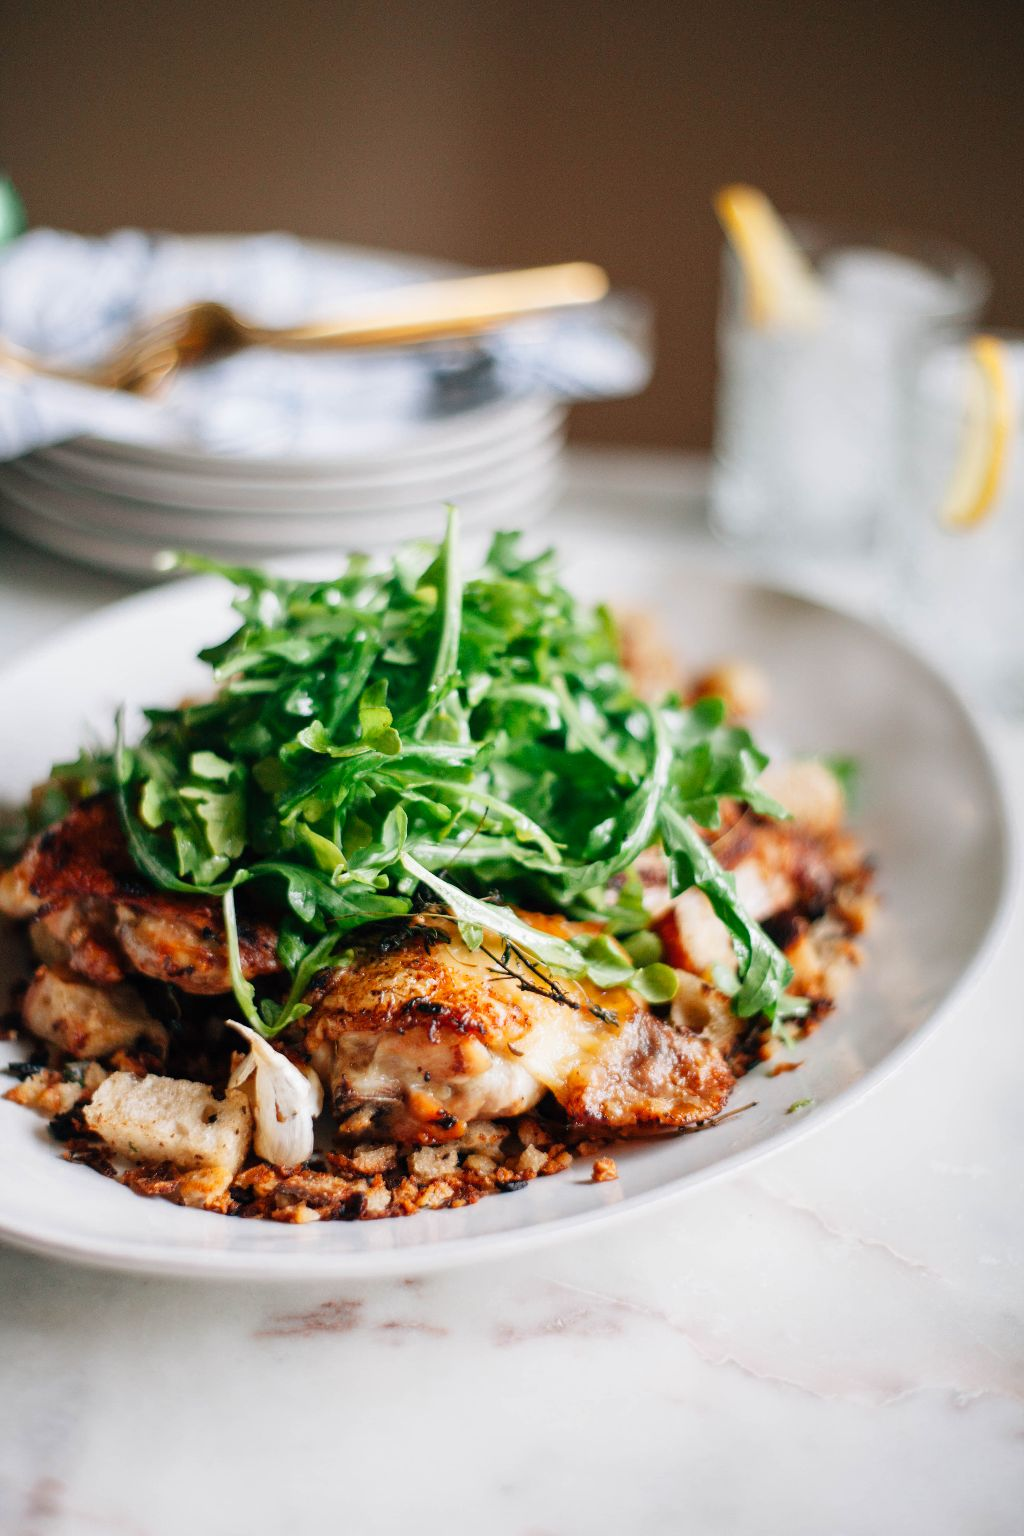 Crispy Chicken Thighs with Bread Salad - Tastemaker Blog